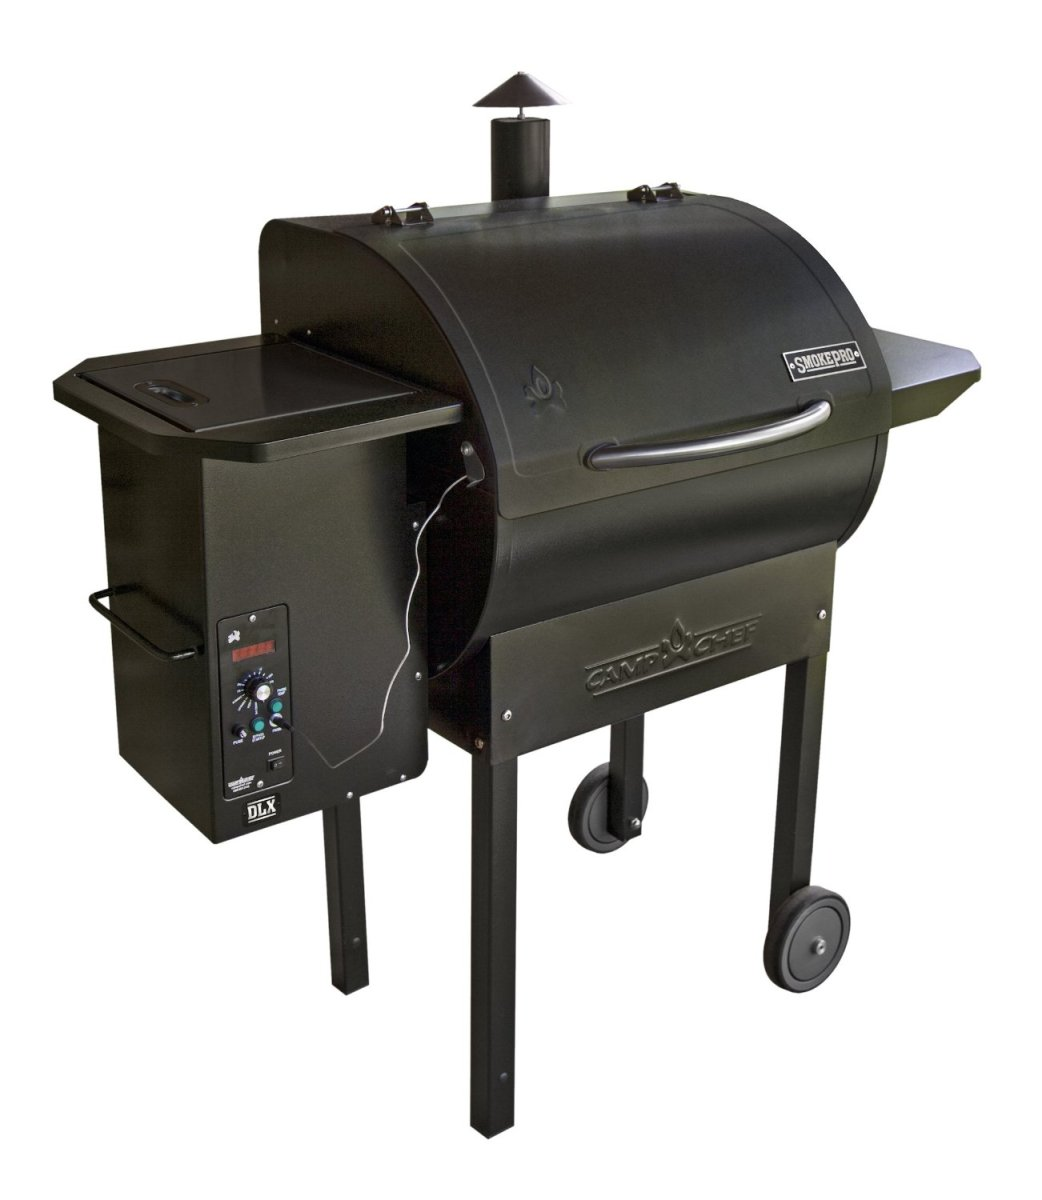 Best Pellet Smoker - Reviews & Buying Guide